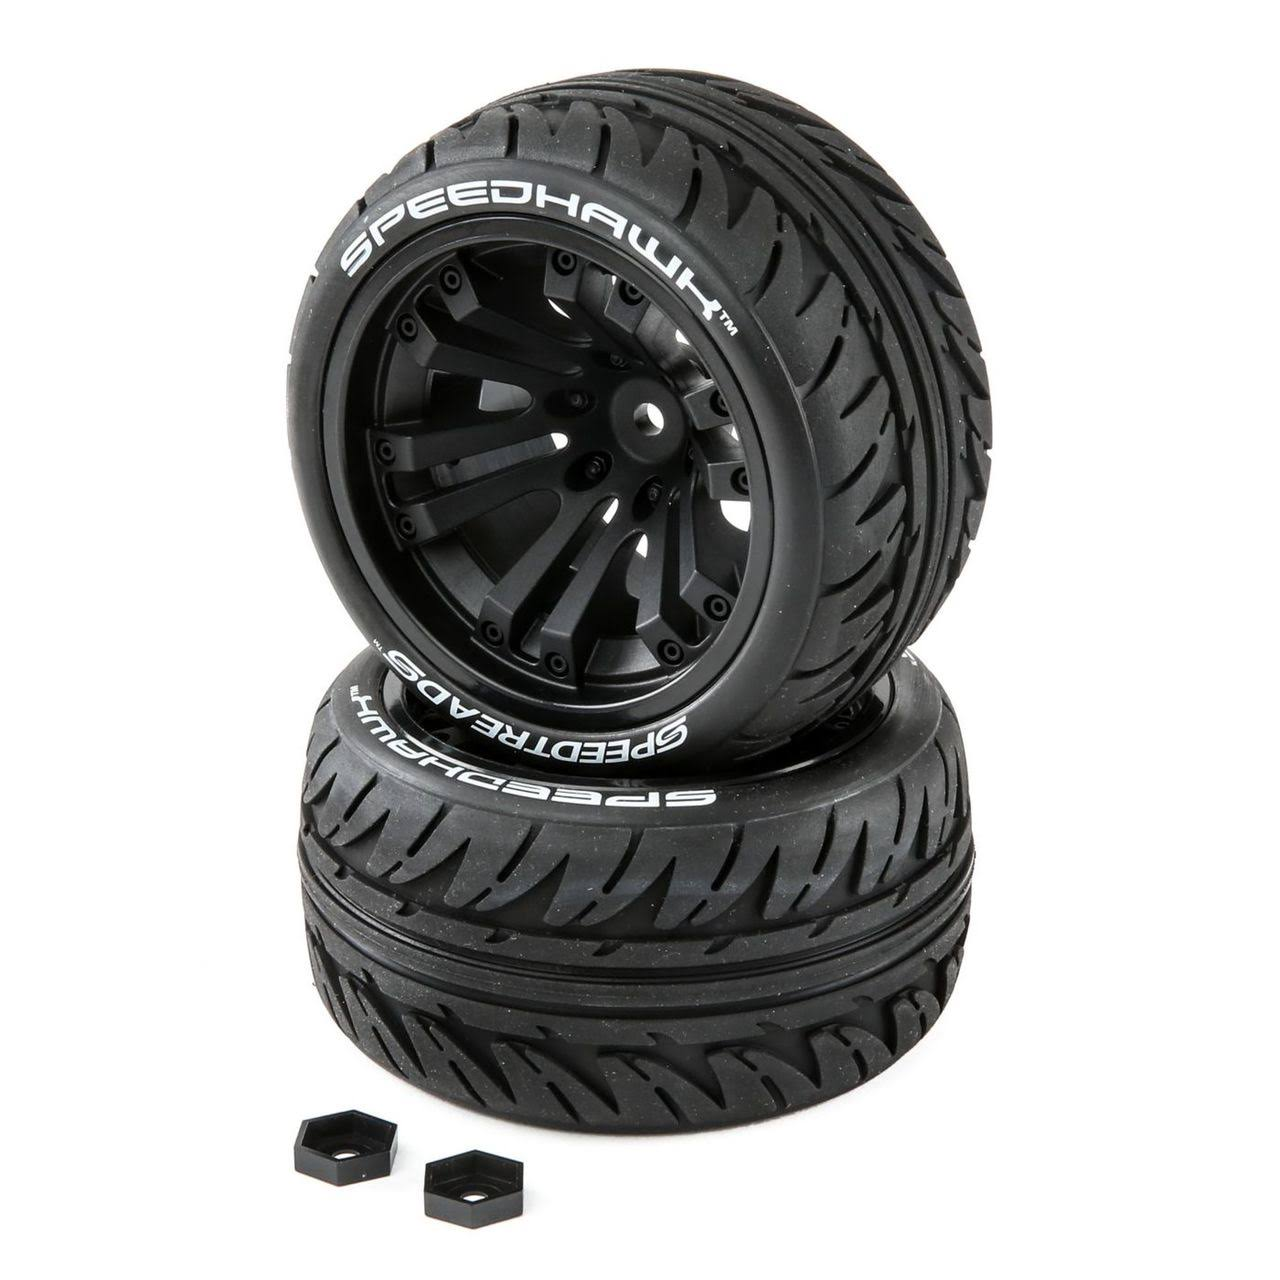 Duratrax DTXC2900 RC Speedtreads Speedhawk Tires - Scale 1:10